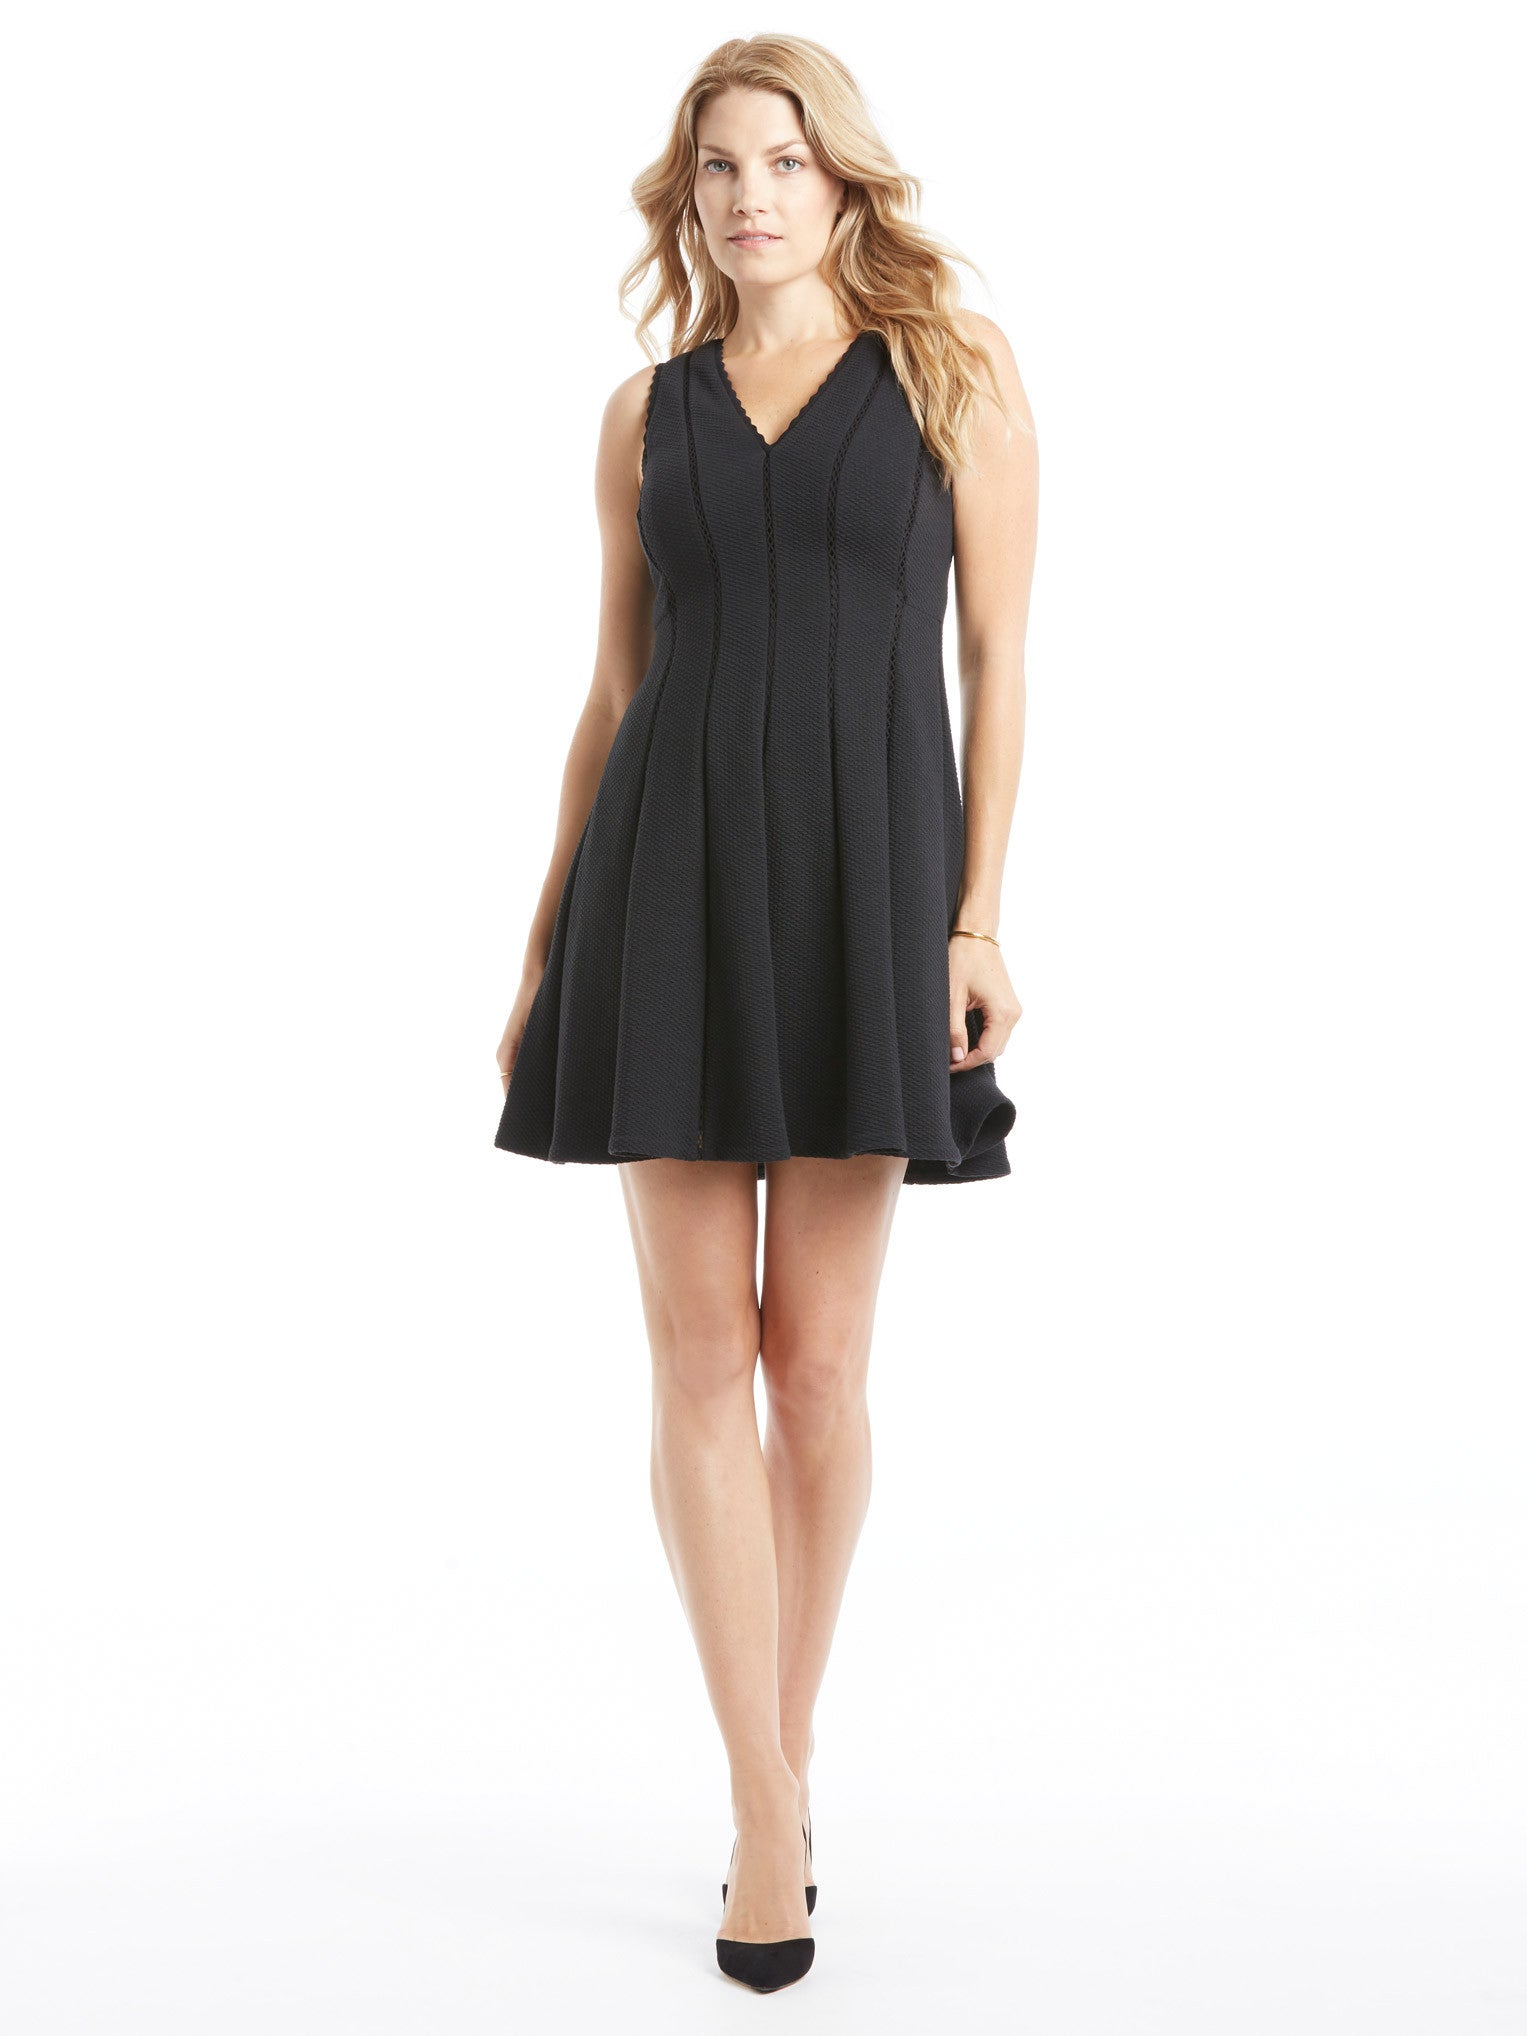 TILDEN | Rebecca Taylor Diamond Texture Dress